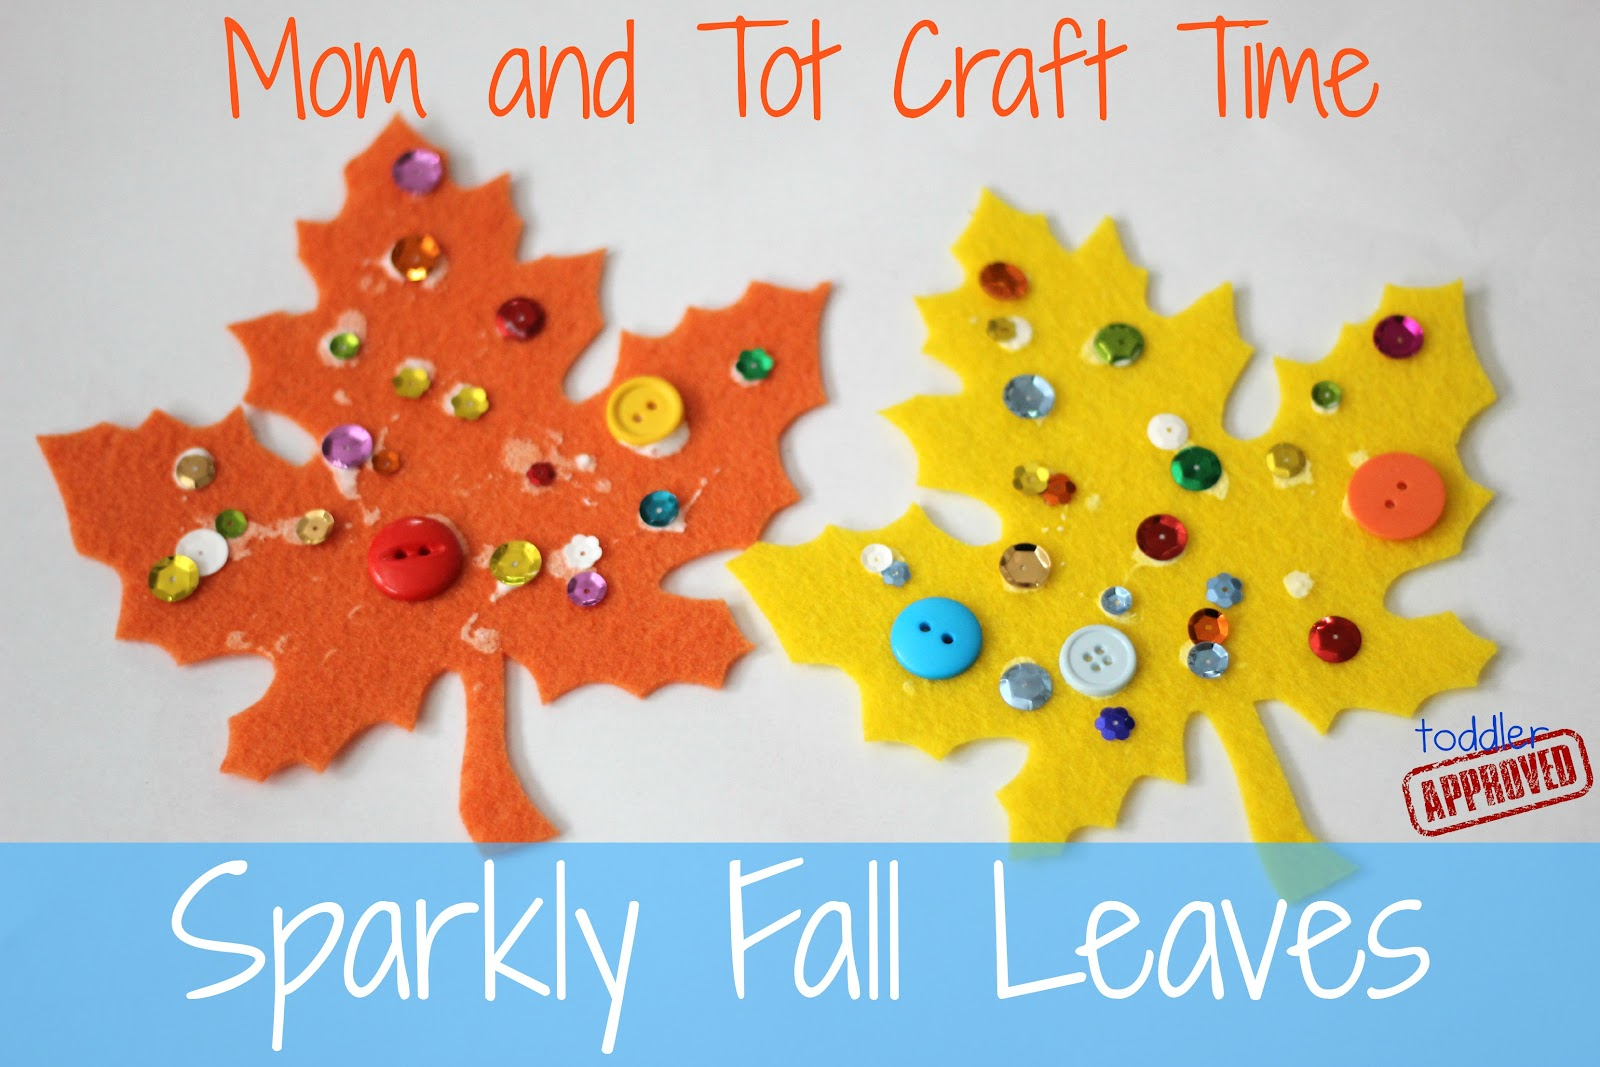 Toddler Approved Mom And Tot Craft Time Sparkly Fall Leaves